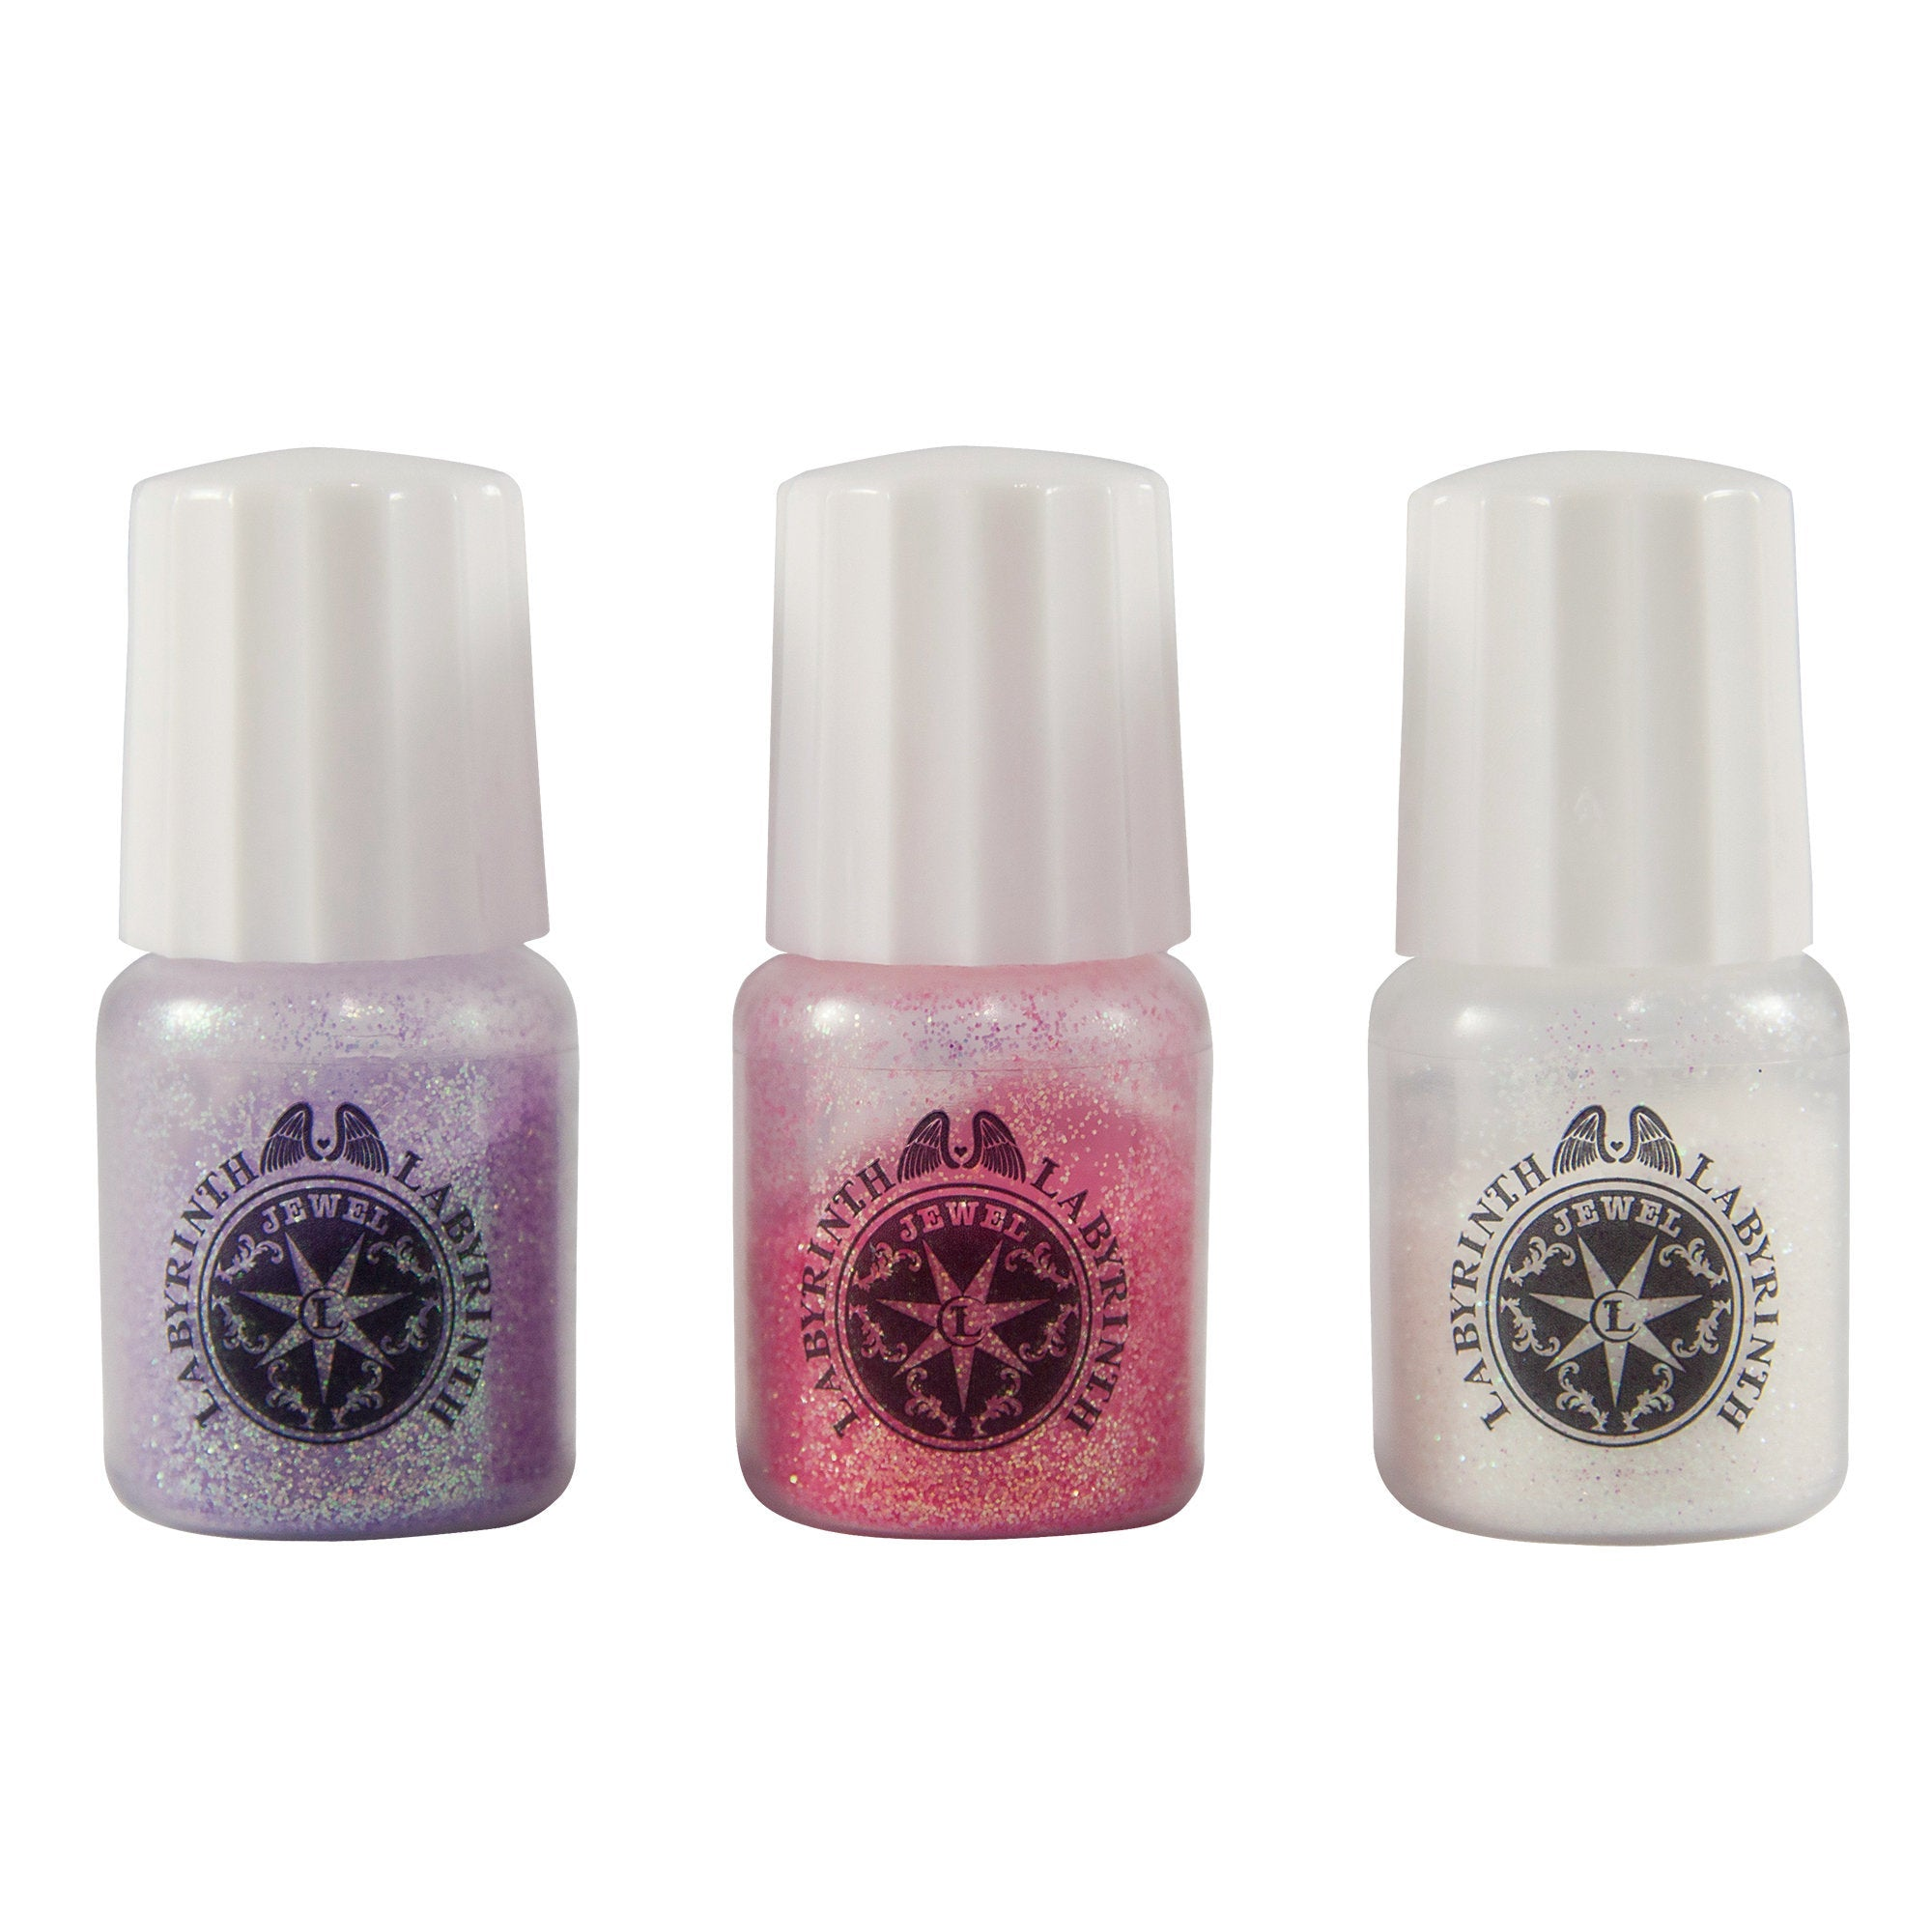 Padico Glitter Set for Resin Crafts - Purple, Pink, White